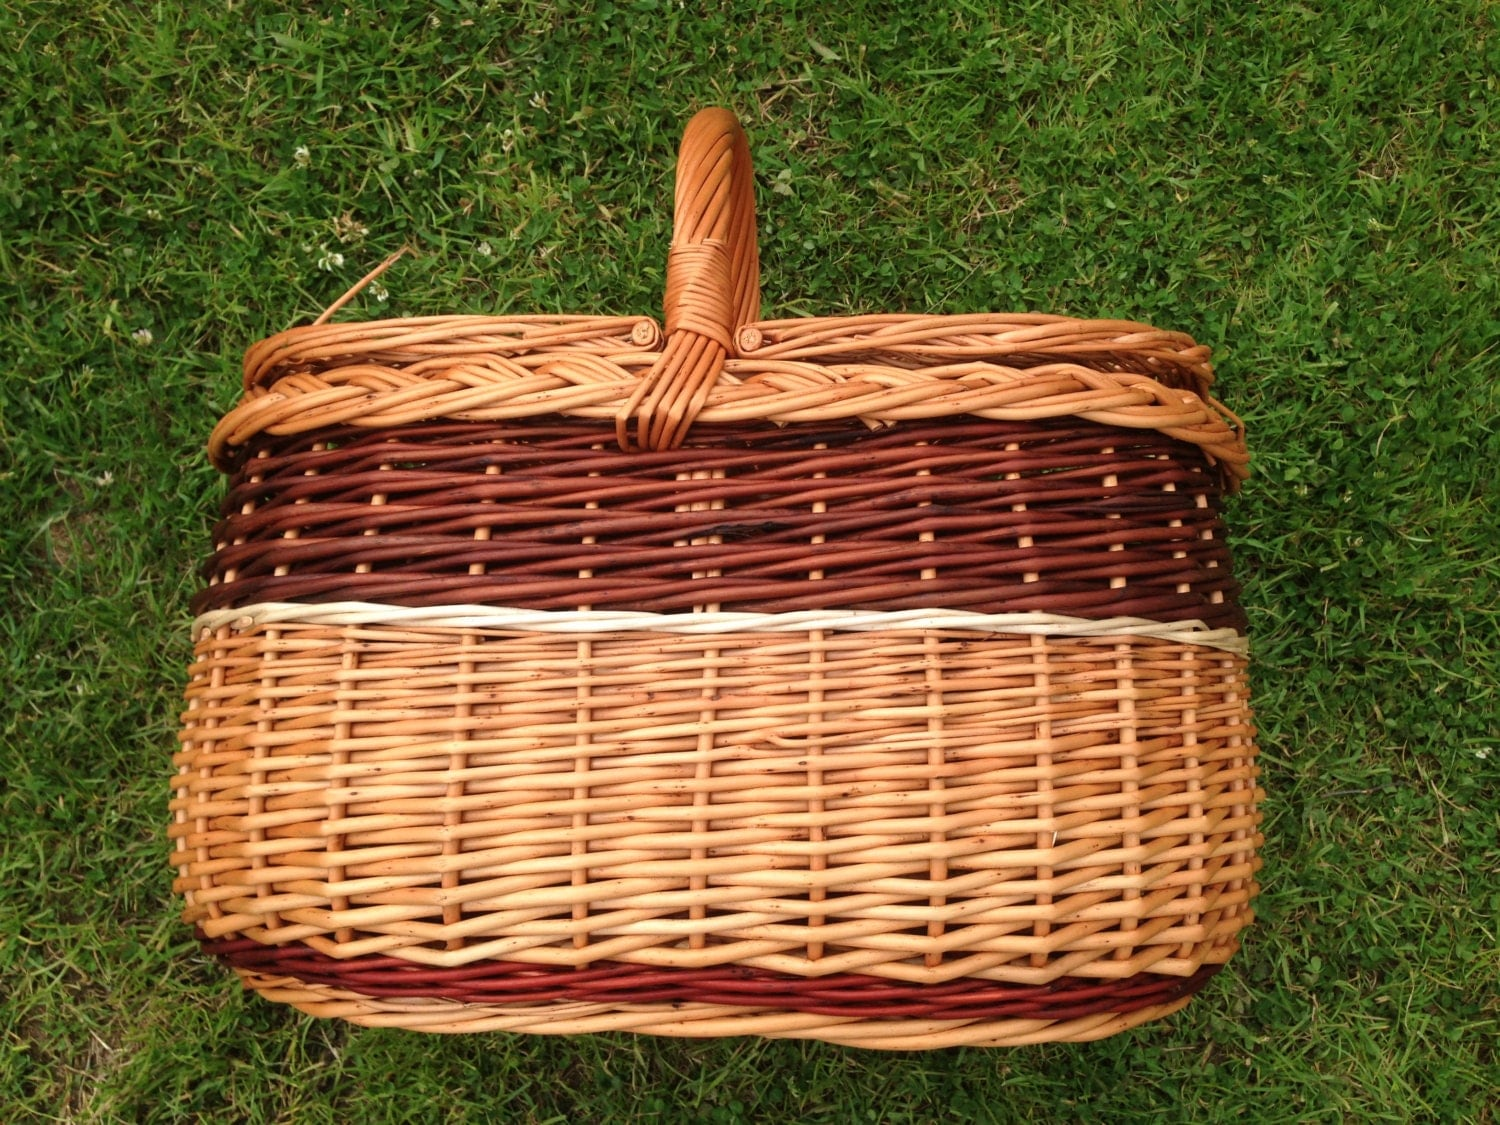 Picnic Baskets For 4 Ireland : Large irish willow picnic basket with lid by